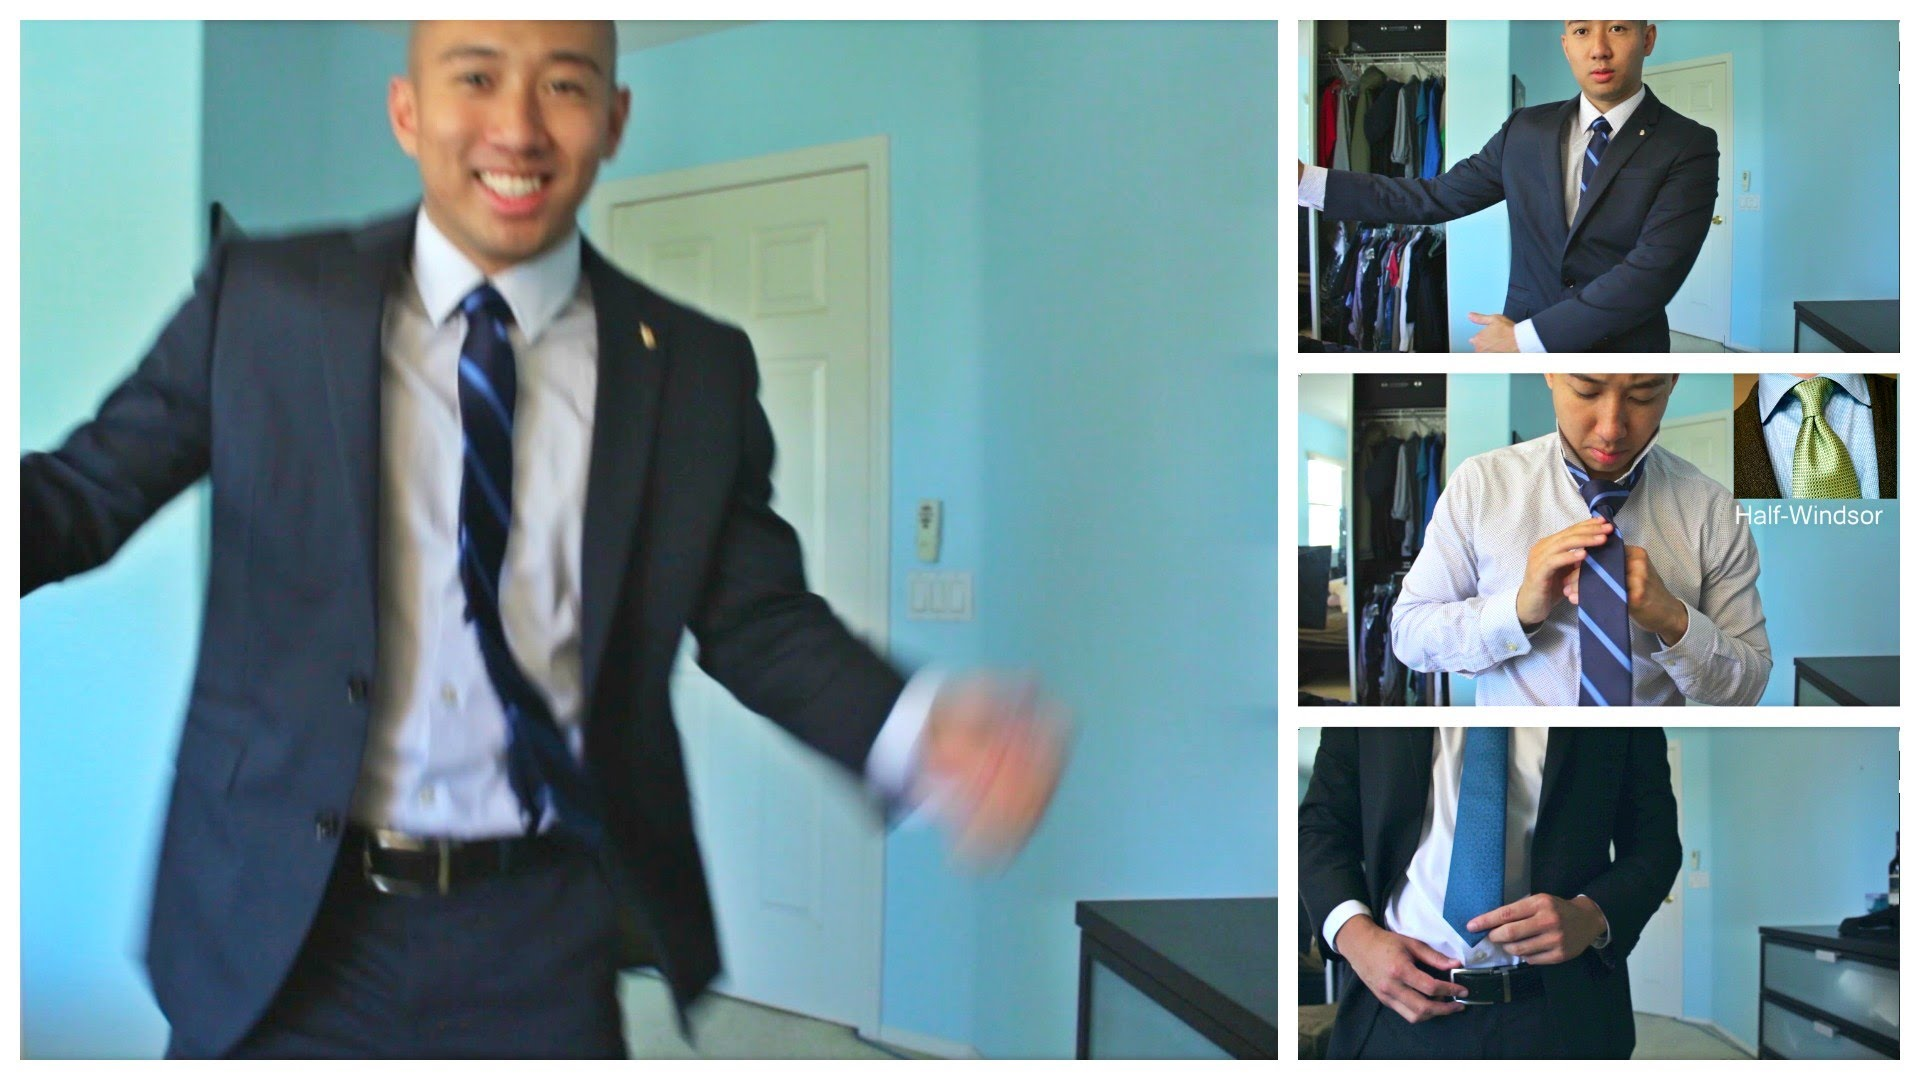 What To Wear To An Interview For Men In 5 5 Min The Entrepreneur Fund